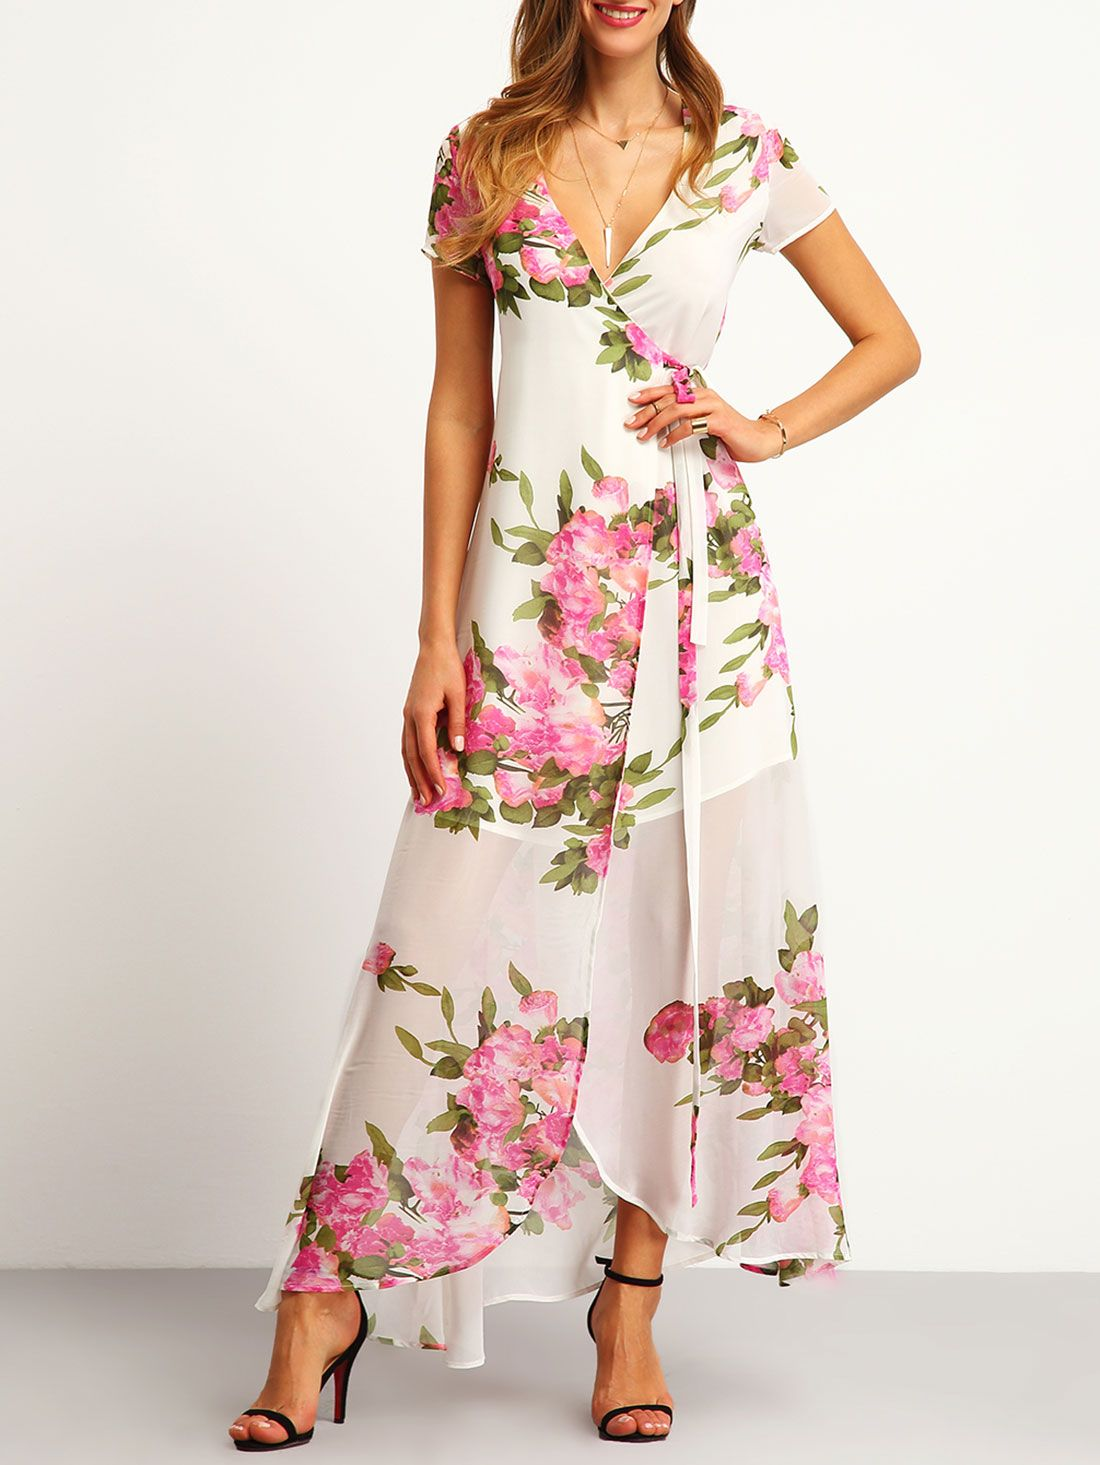 d7c81bd6b6 Shop White Floral Print Wrap Maxi Dress online. SheIn offers White Floral  Print Wrap Maxi Dress & more to fit your fashionable needs.